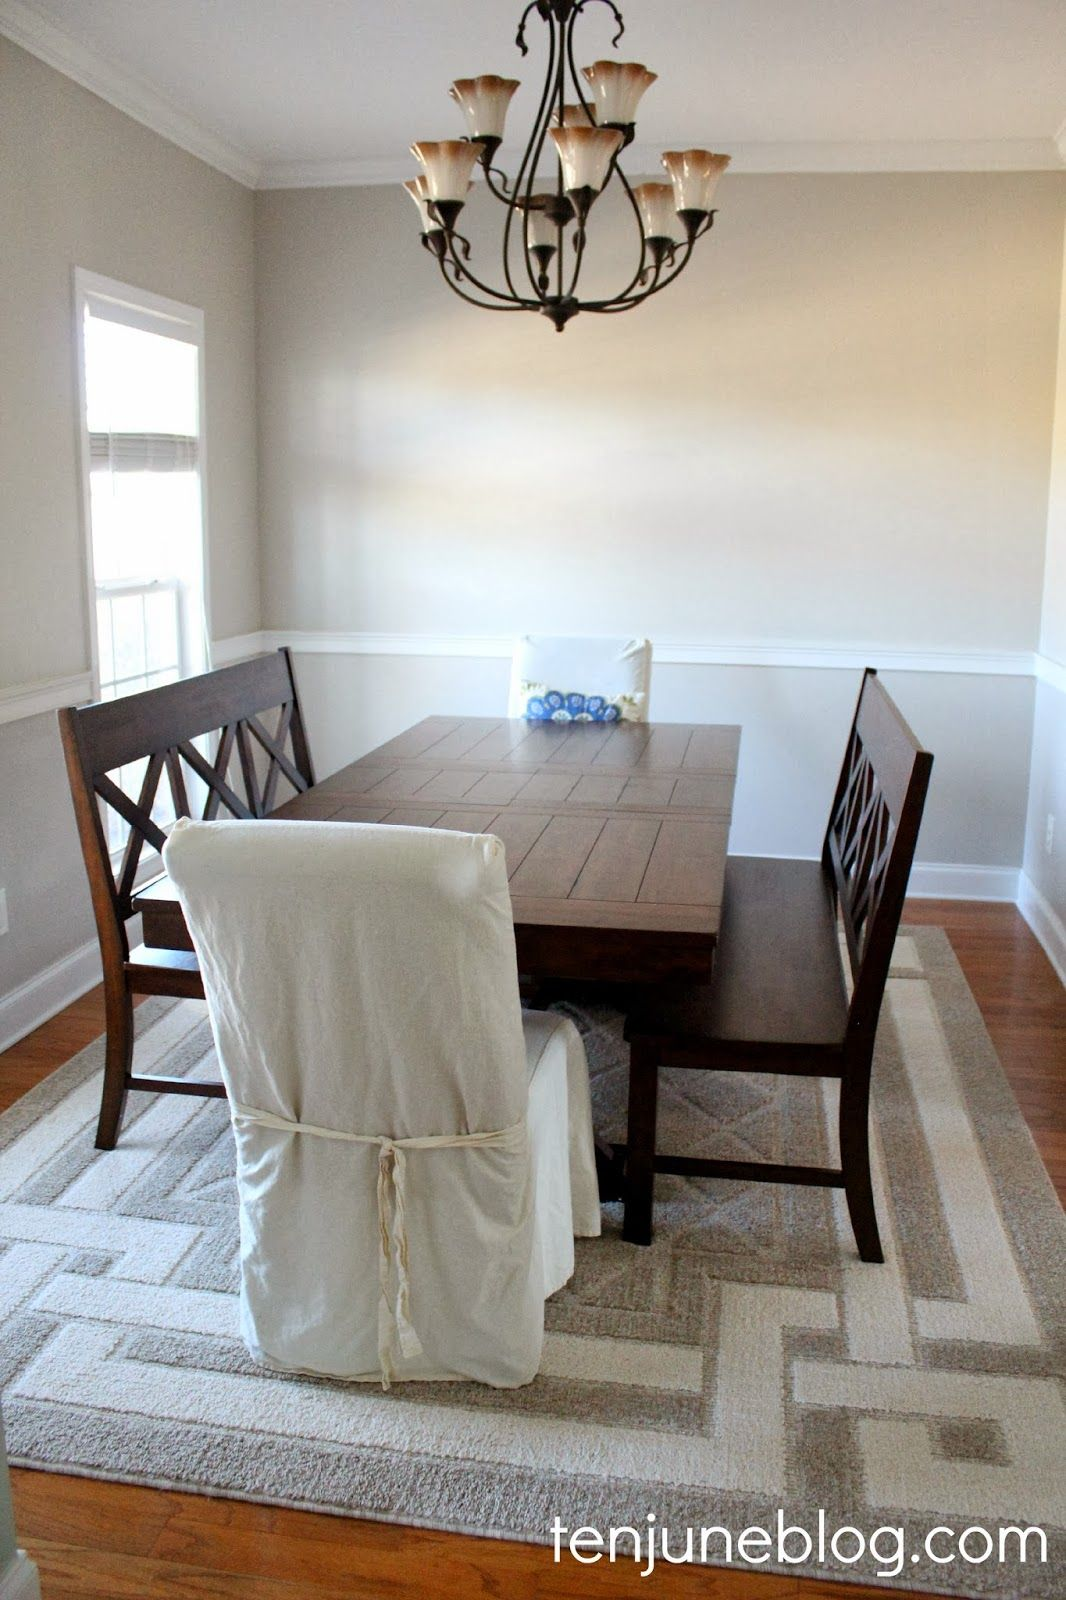 Sherwin Williams Agreeable Gray It S A Nice Cool Neutral Gray That Has A Tiny Hint Dining Room Paint Grey Dining Room Paint Agreeable Gray Sherwin Williams #wickham #gray #living #room